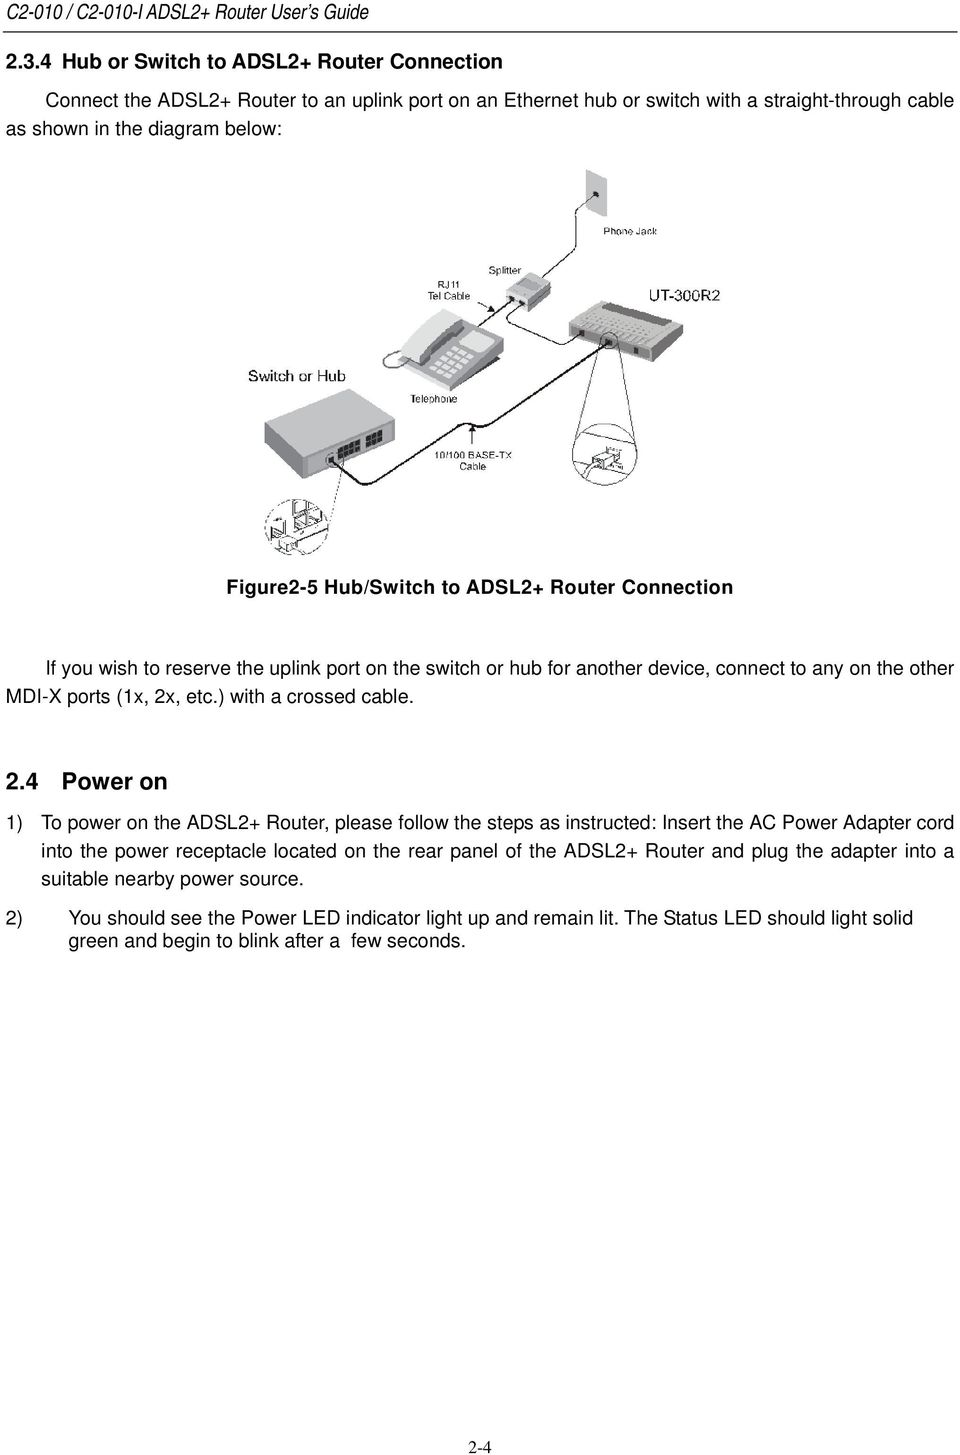 2.4 Power on 1) To power on the ADSL2+ Router, please follow the steps as instructed: Insert the AC Power Adapter cord into the power receptacle located on the rear panel of the ADSL2+ Router and